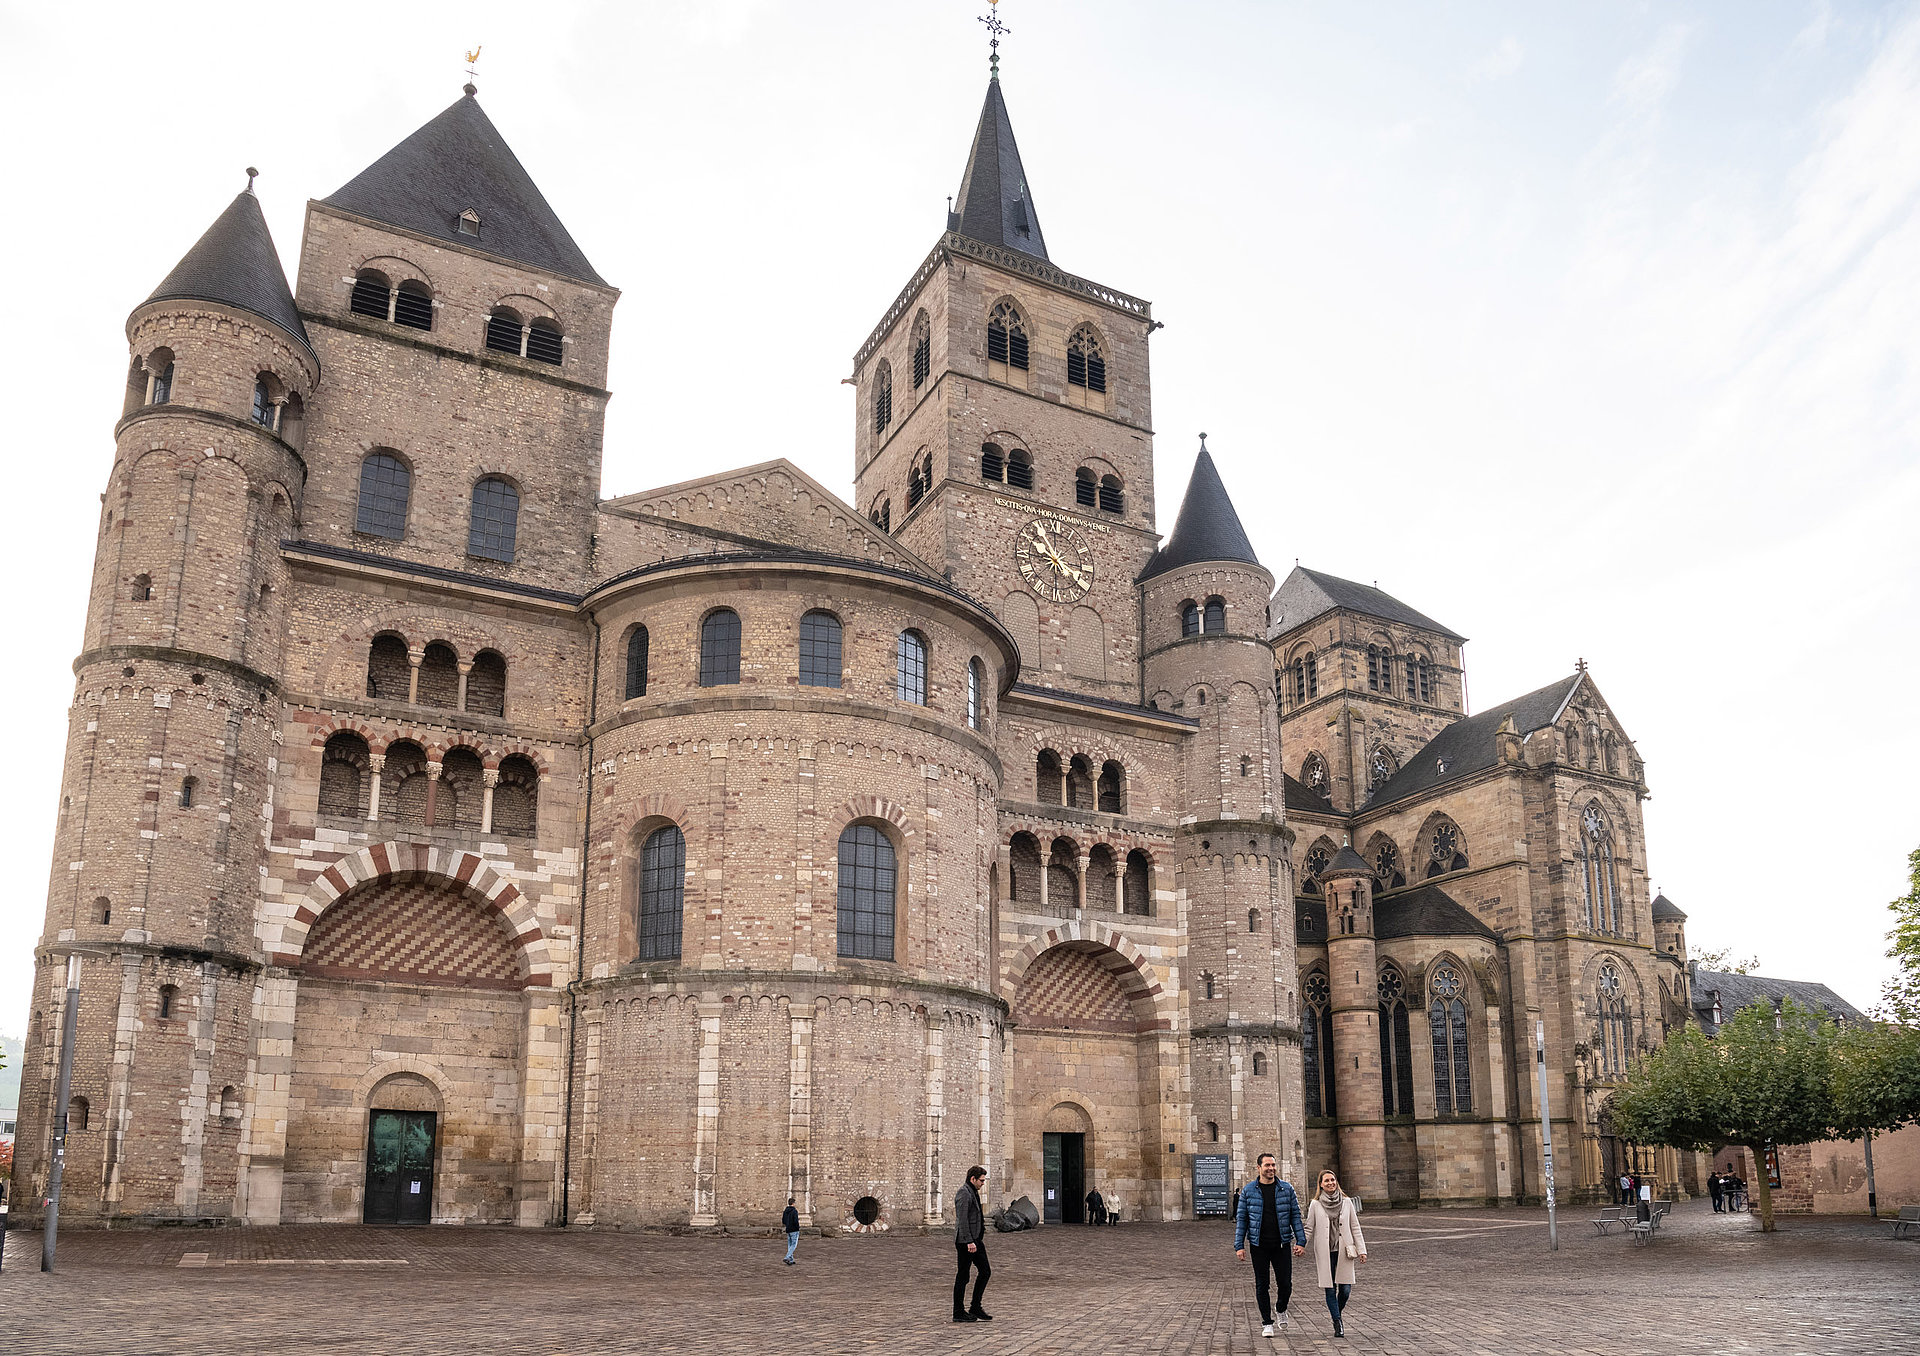 Dom in Trier, Mosel